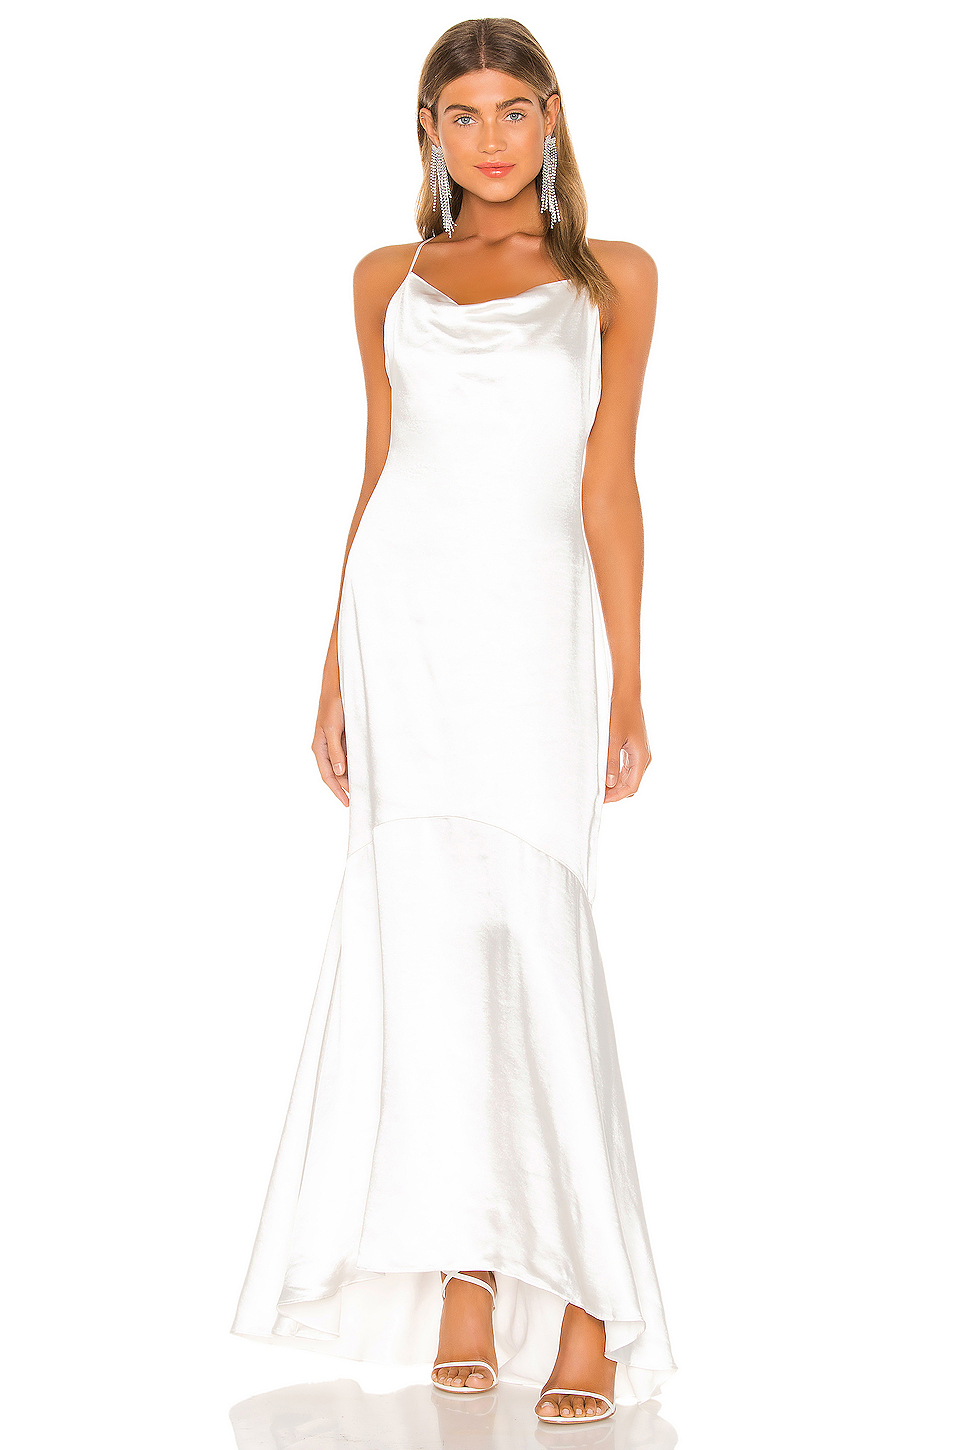 """<h2><a href=""""https://www.revolve.com/wedding/bride/?navsrc=subclothing"""" rel=""""nofollow noopener"""" target=""""_blank"""" data-ylk=""""slk:Revolve"""" class=""""link rapid-noclick-resp"""">Revolve</a></h2><br>If you're a frequent shopper on Revolve, you'll recognize the e-tailer's penchant for sexy, form-fitting, high-slit styles in its bridal edit. For those looking for something more subtle, Revolve also carries brands like LoveShackFancy, known for its sweet, prairie-like dresses."""